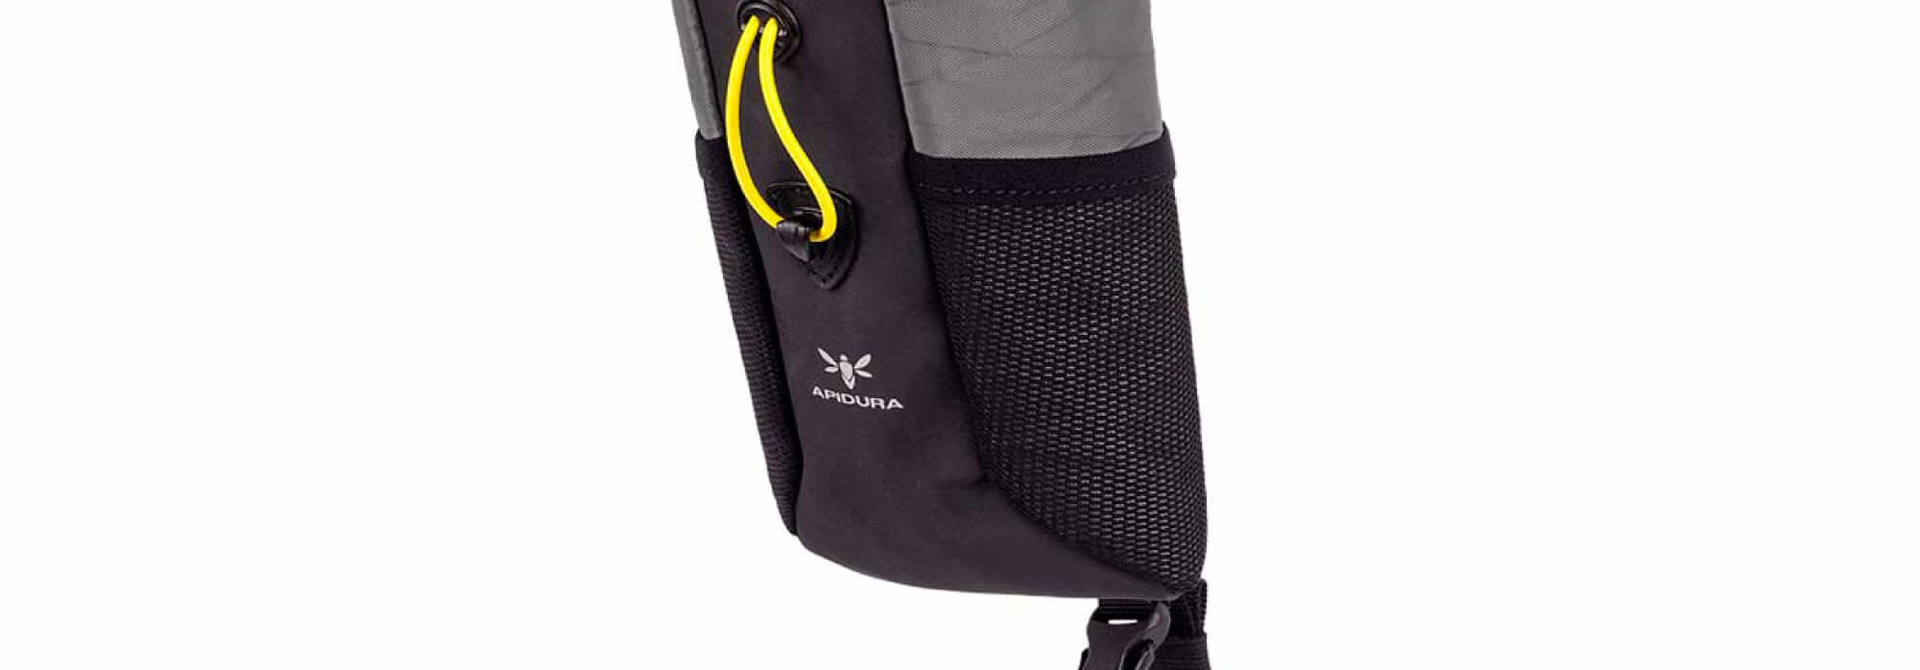 Backcountry Food Pouch Plus 1.2 L